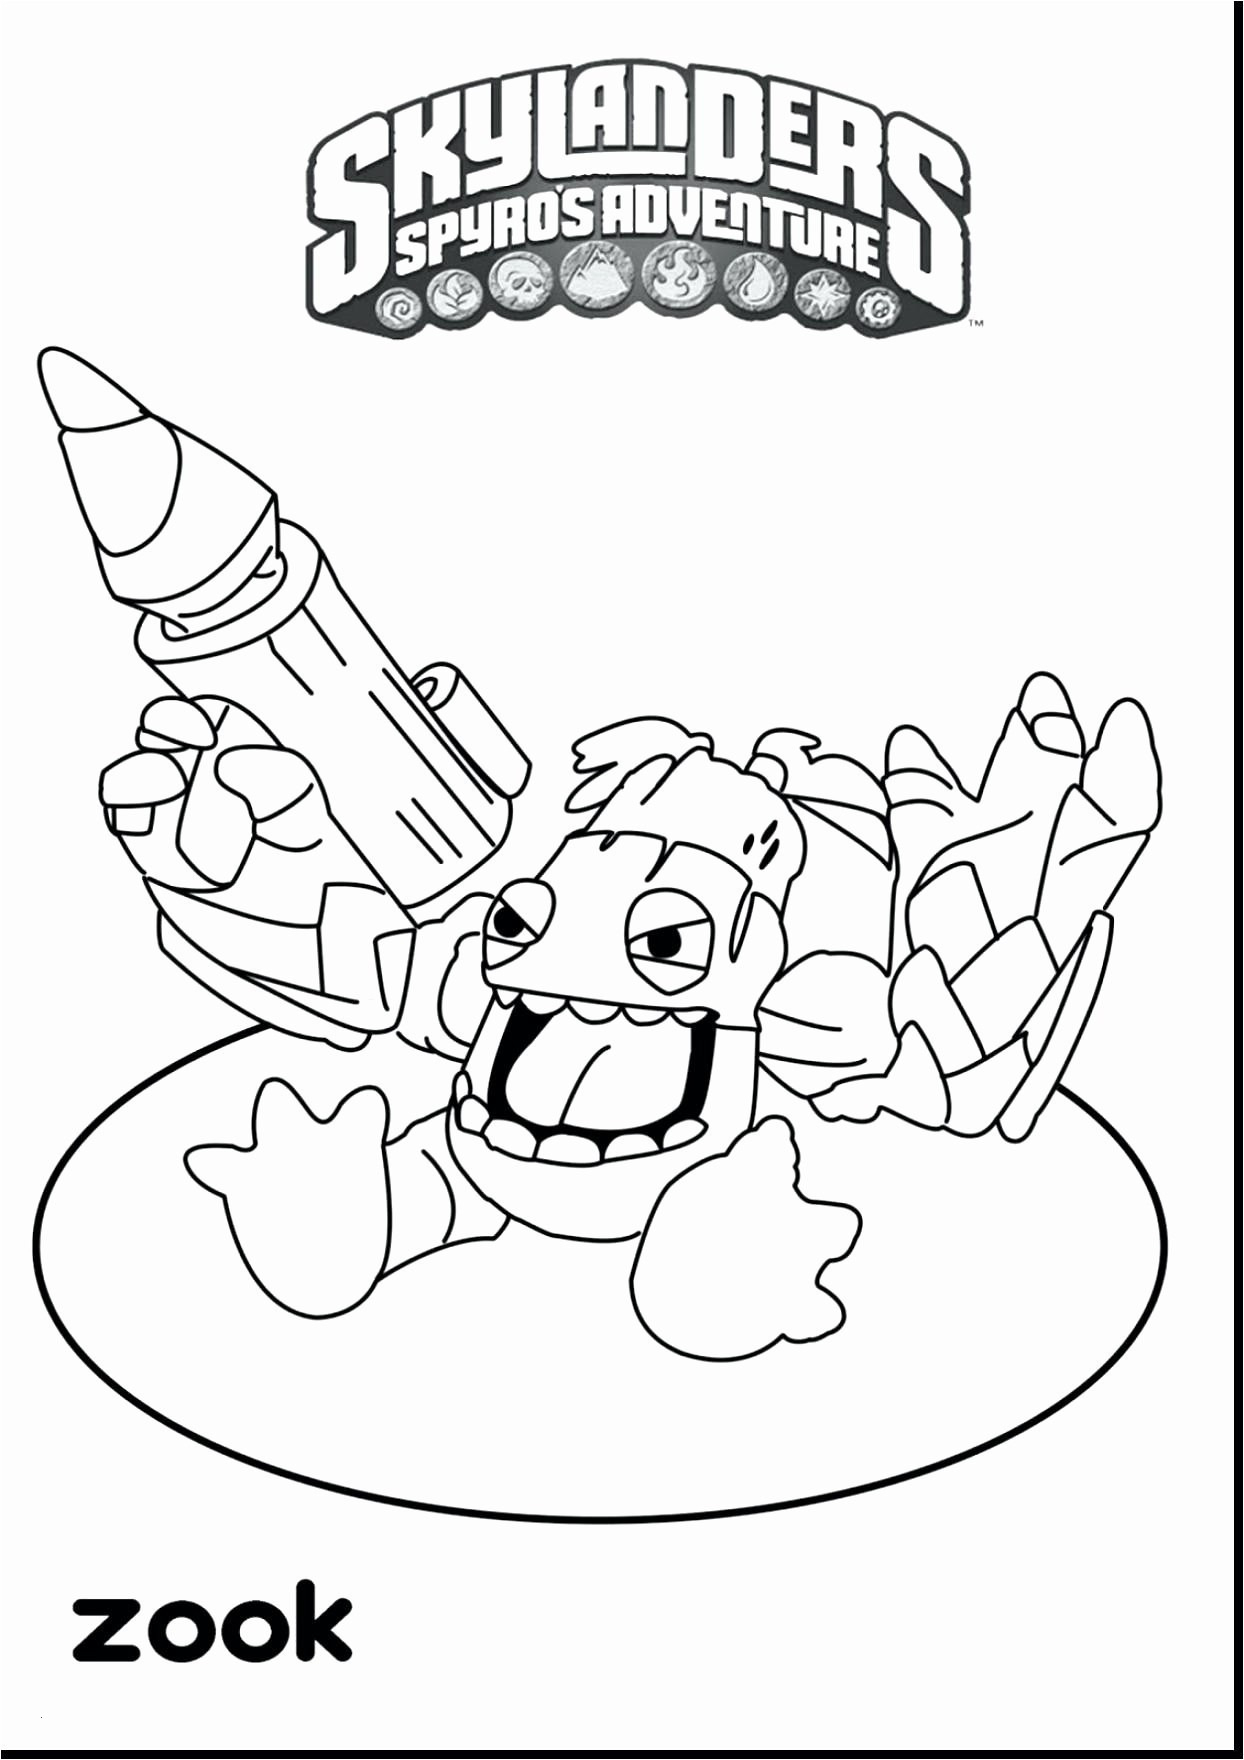 Chocolate Candy Coloring Pages  Printable 10p - Free For kids